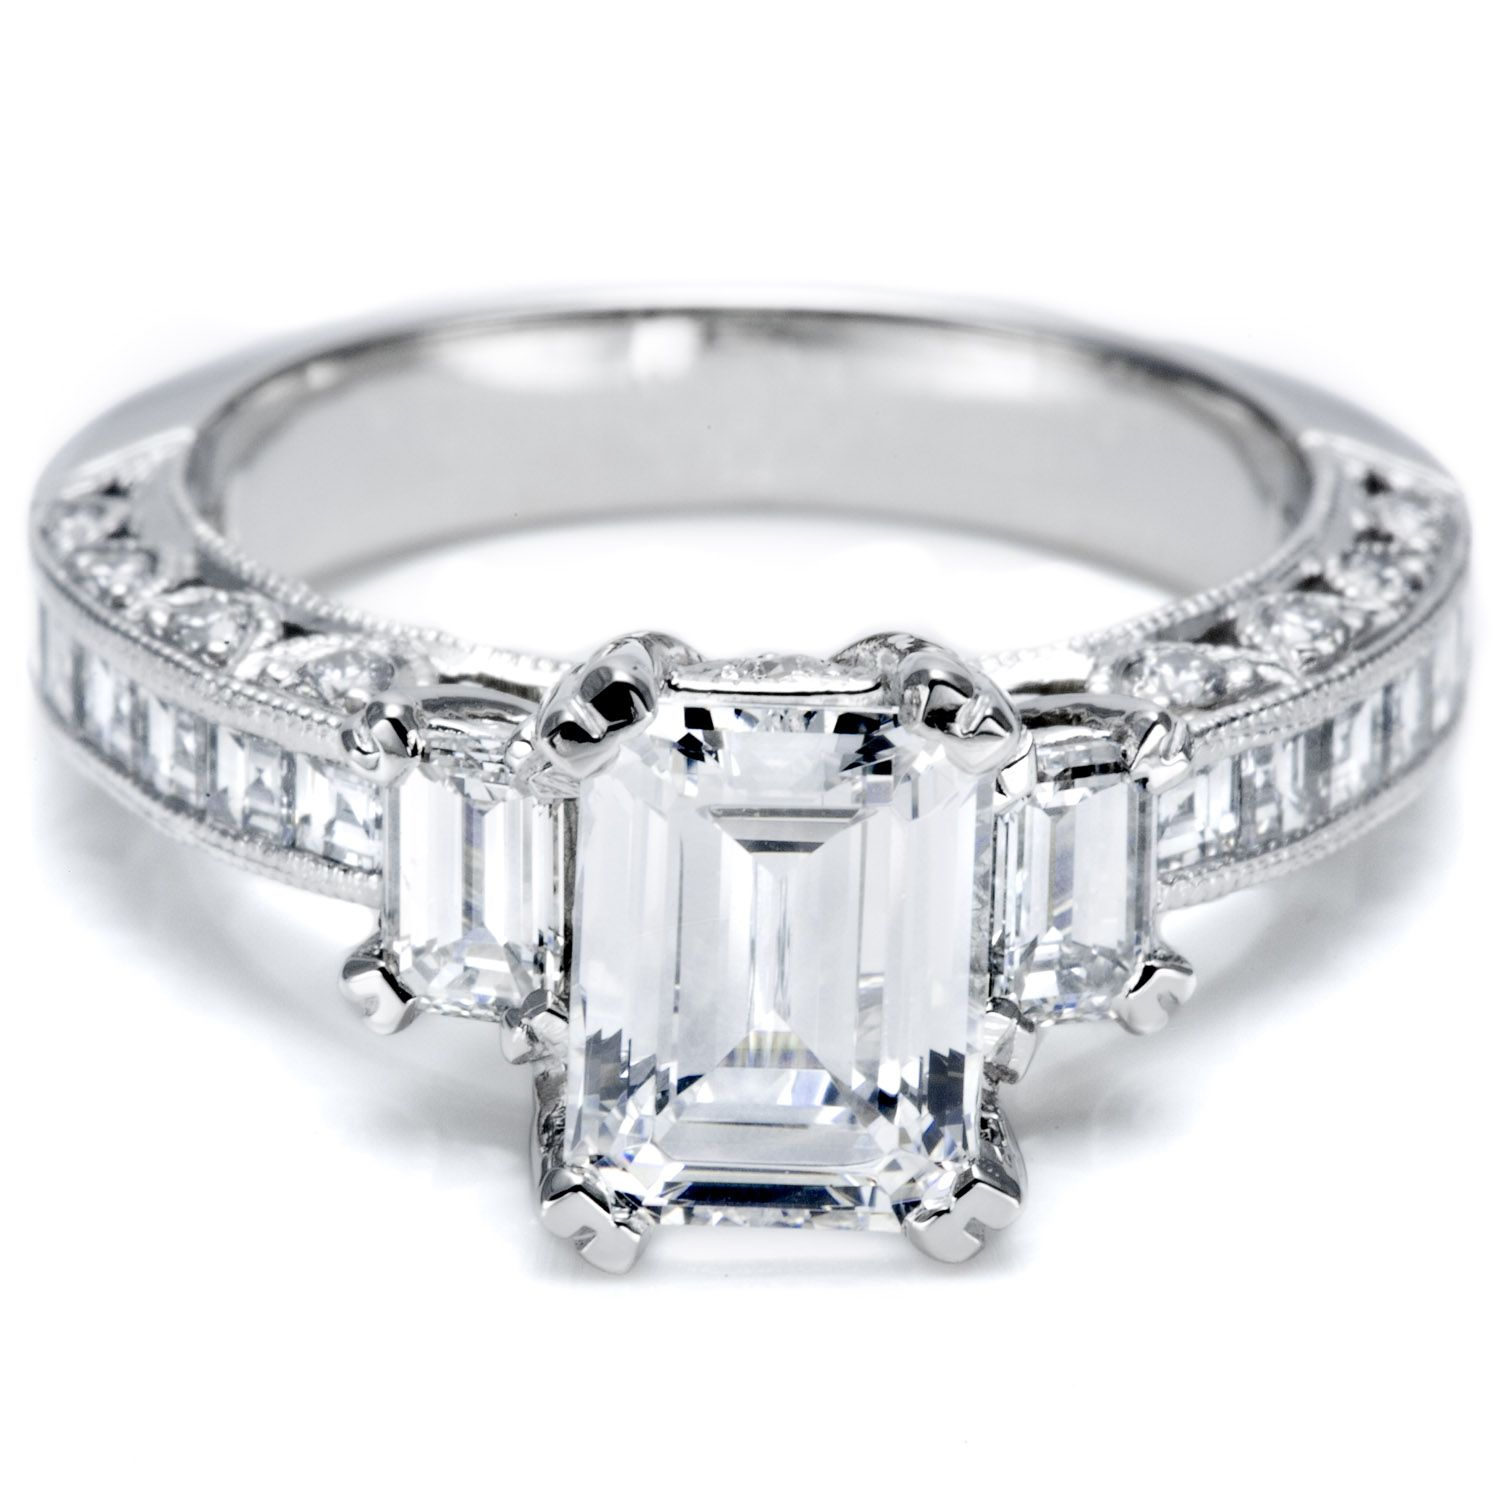 Amazing Tacori emerald cut diamond with two emerald cut side stones and a milligrain accentuated shining streamlined band of channel set princess cut diamonds